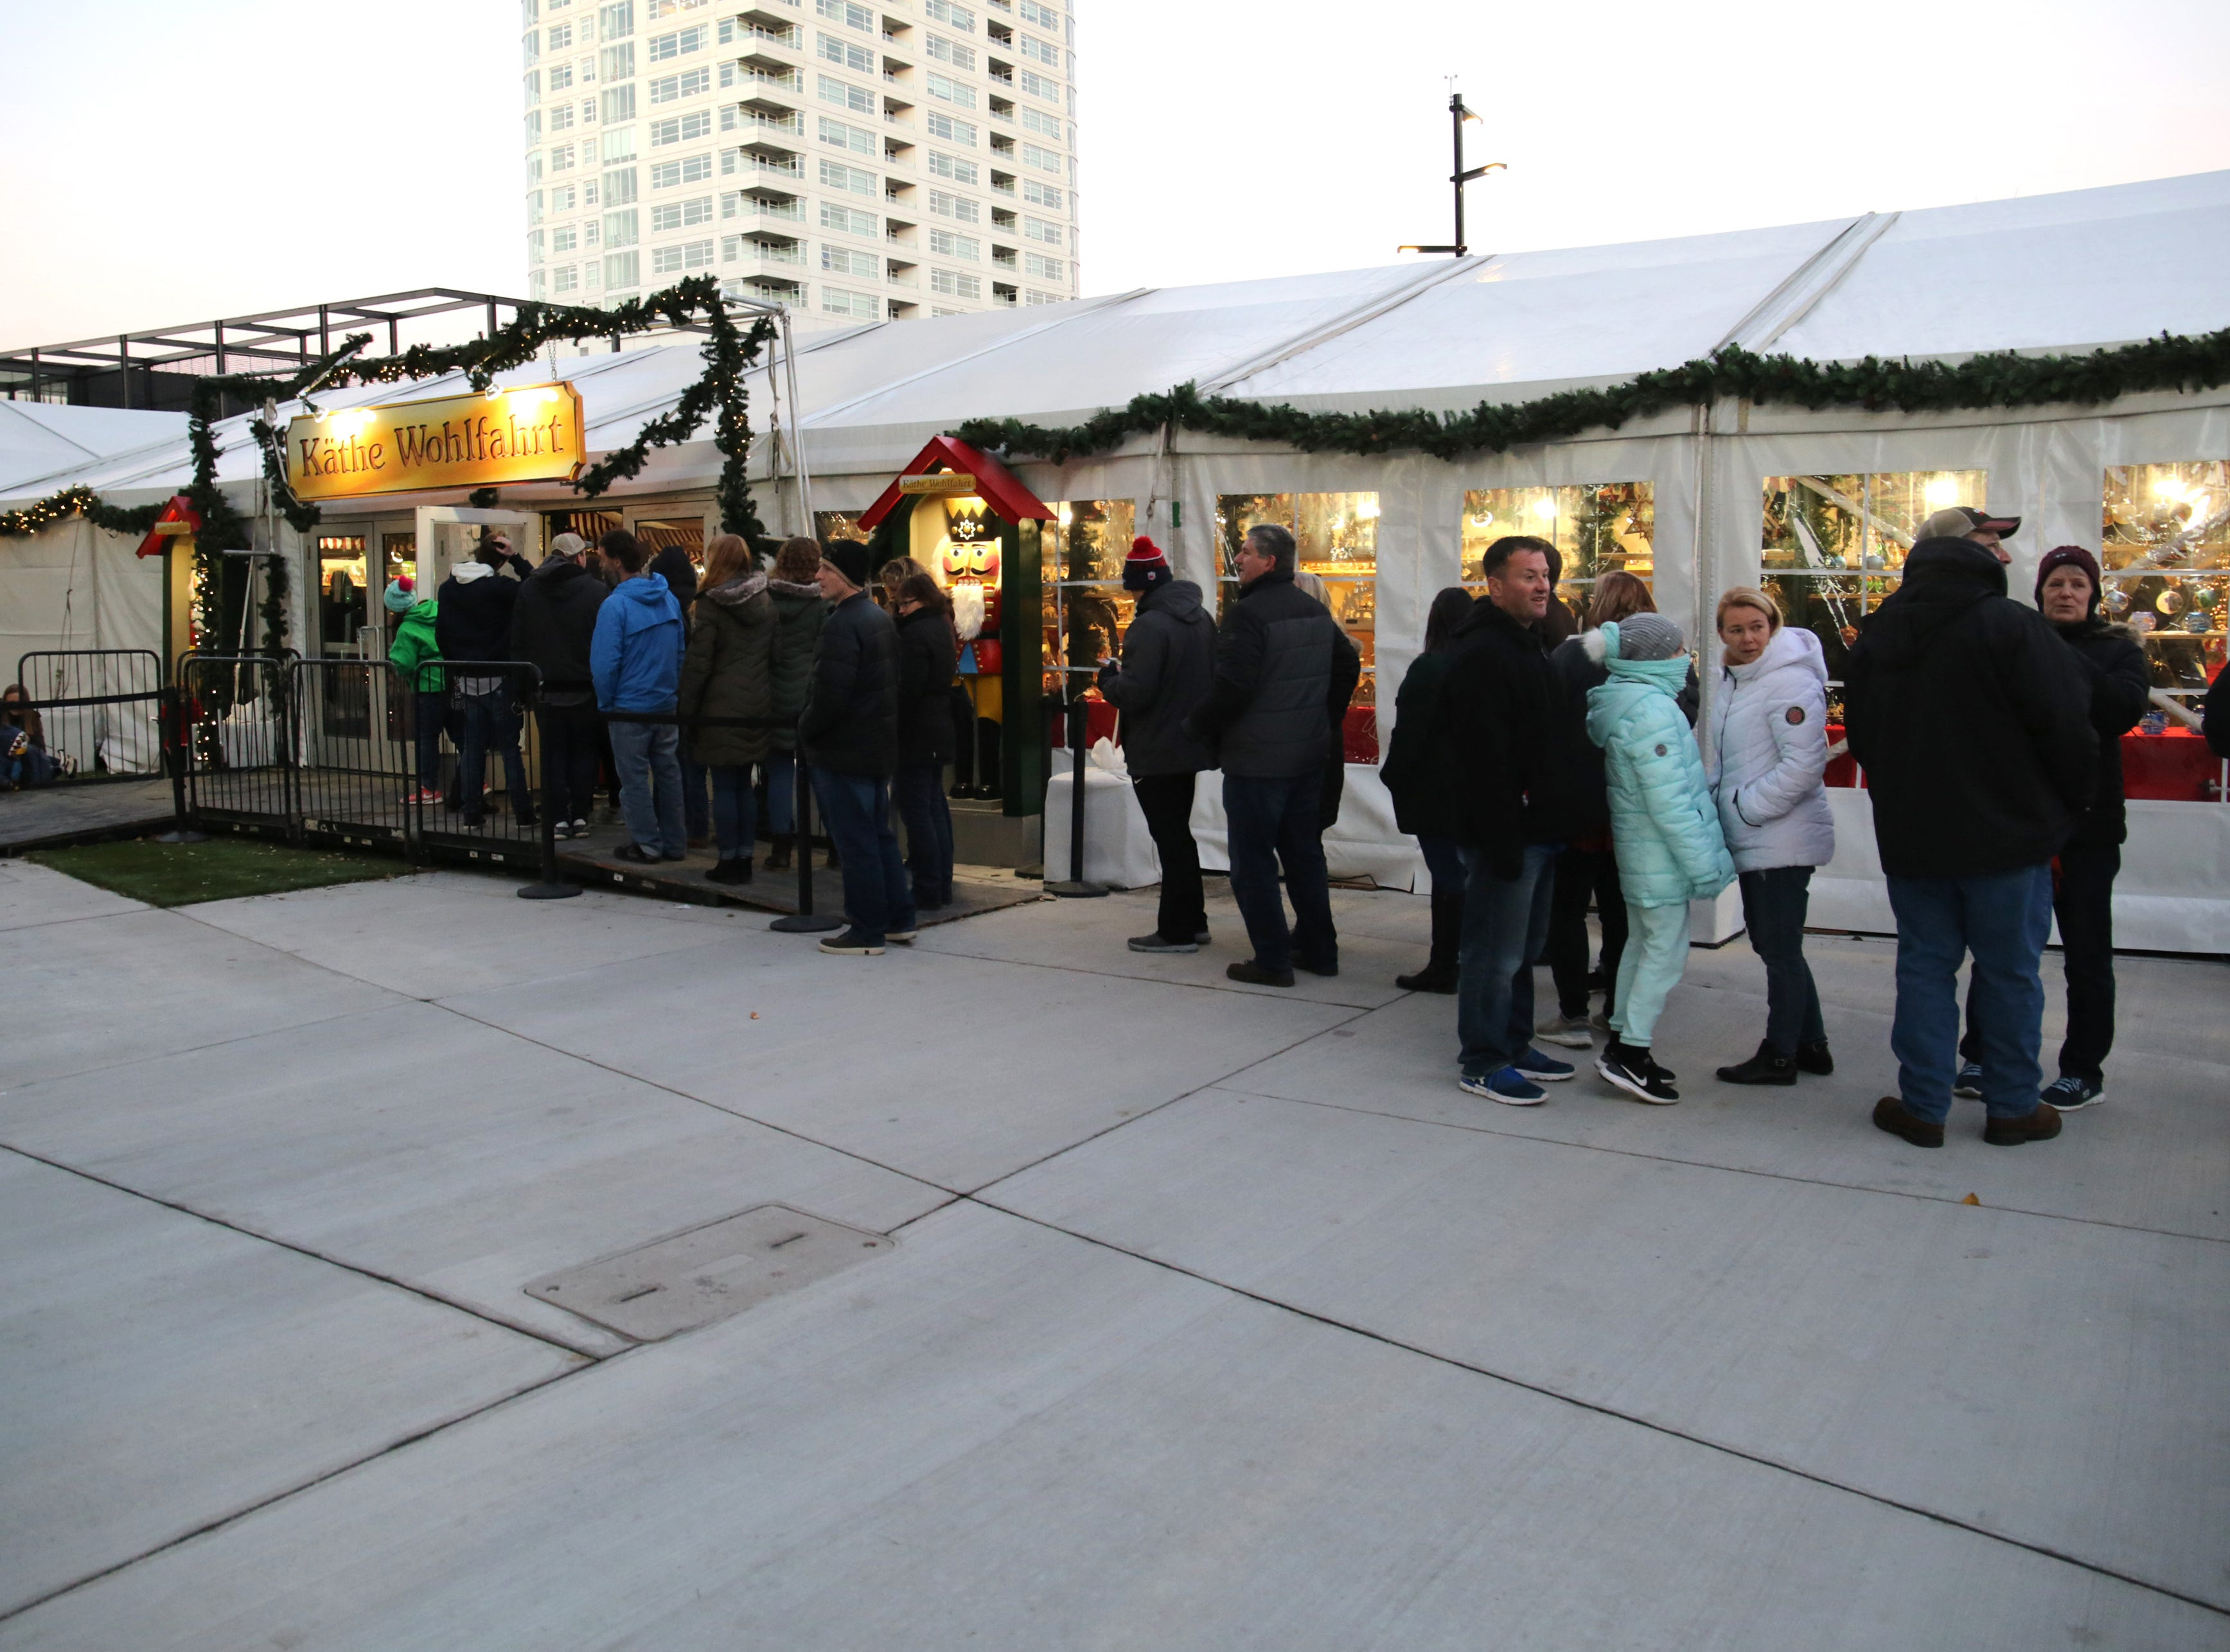 A line of people wait to get into the Kathe Wohlfahrt tent containing numerous holiday items and ornaments.